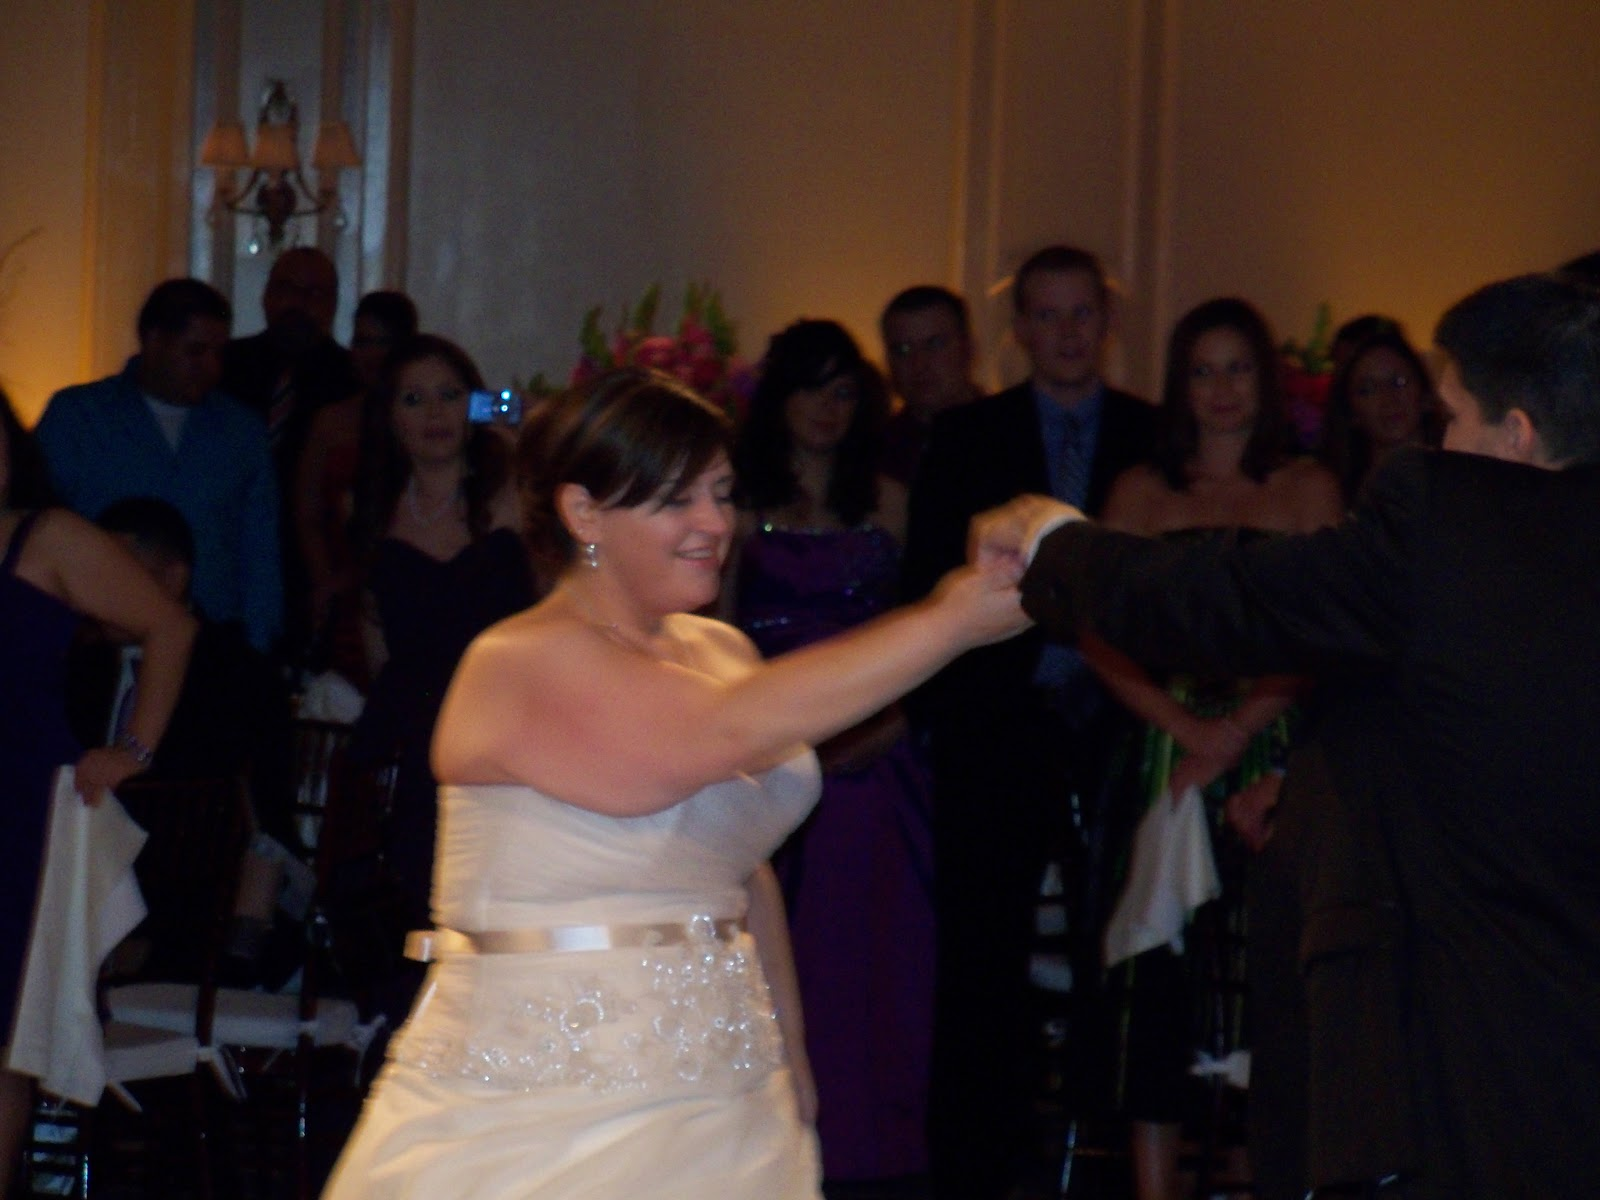 Megan Neal and Mark Suarez wedding - 100_8341.JPG